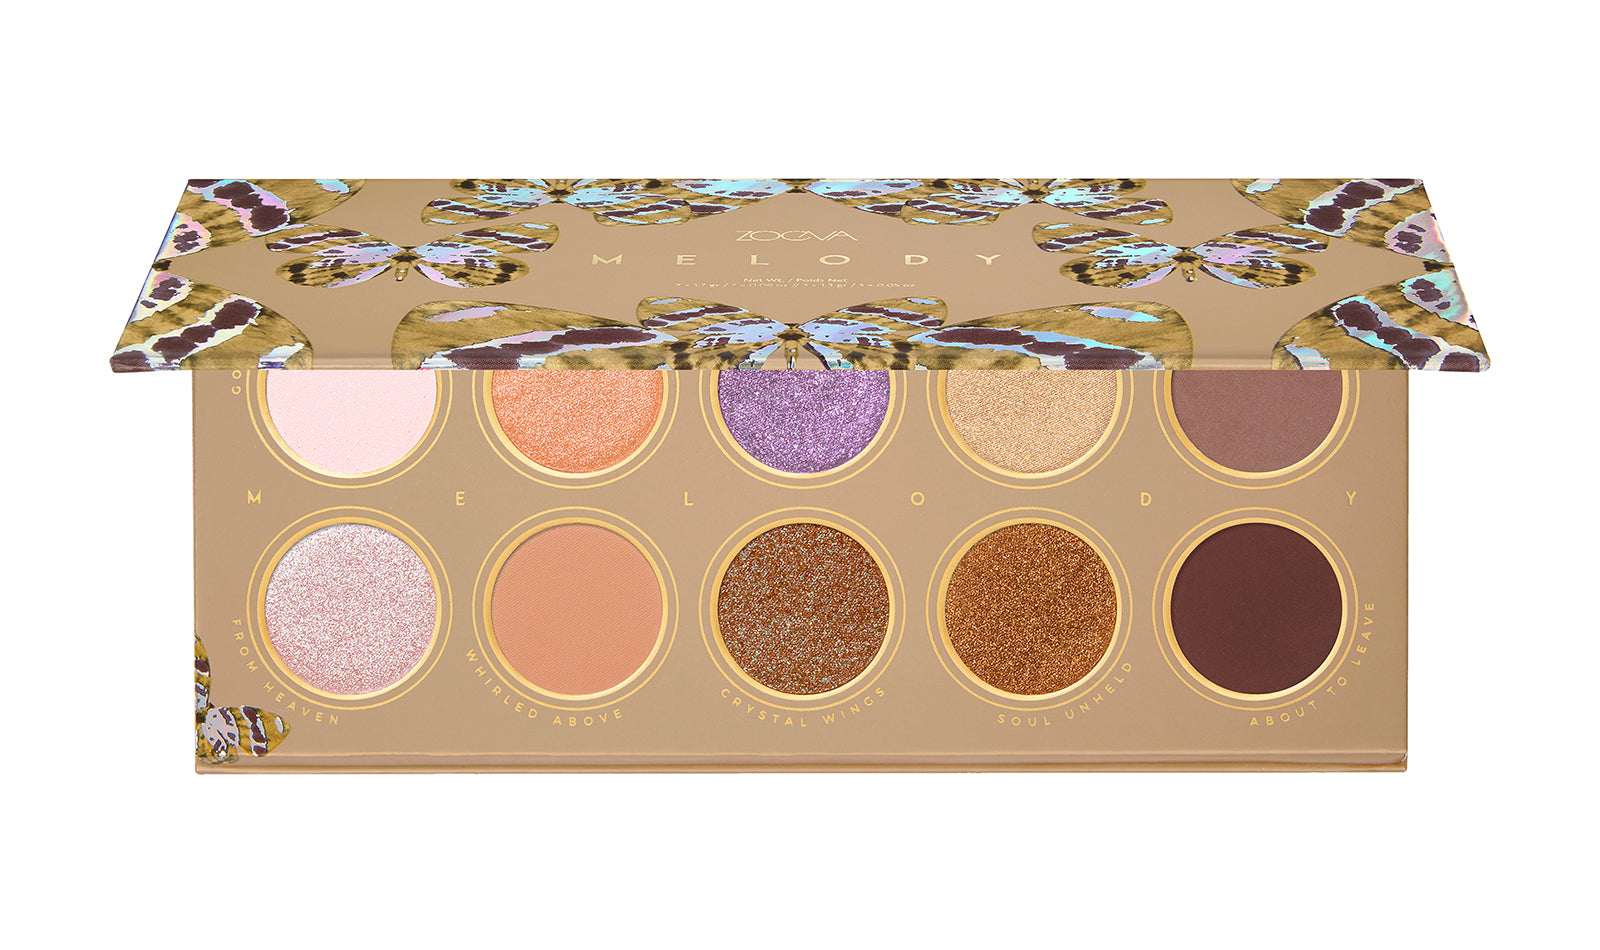 MELODY (EYESHADOW PALETTE)